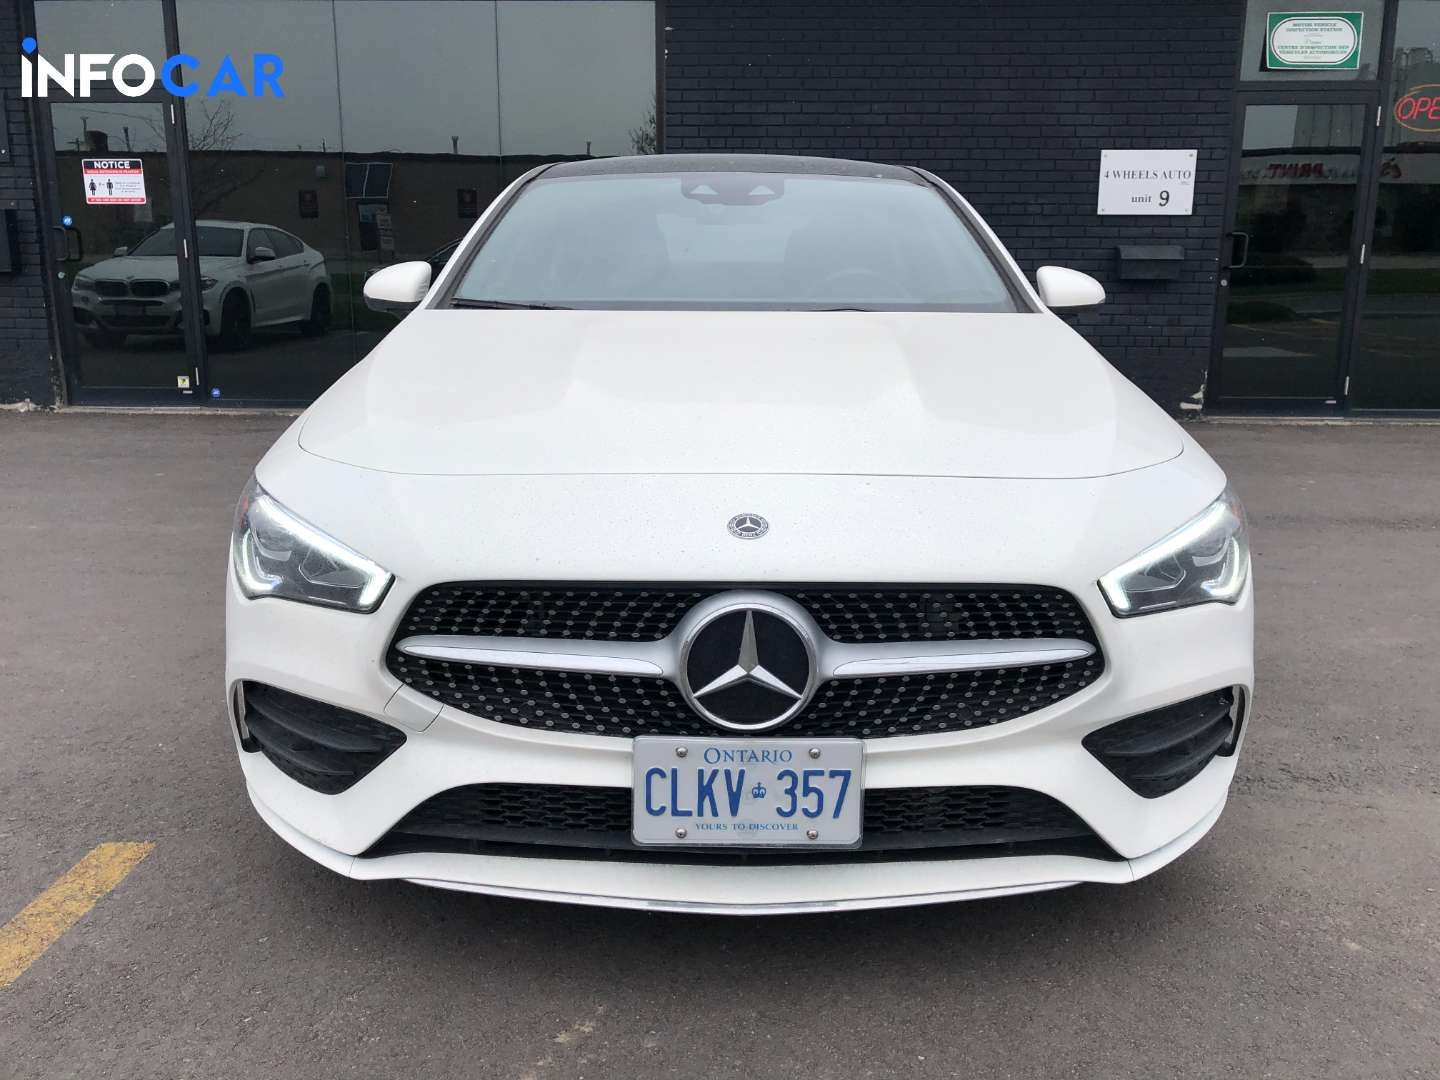 2020 Mercedes-Benz CLA-Class 250 - INFOCAR - Toronto's Most Comprehensive New and Used Auto Trading Platform